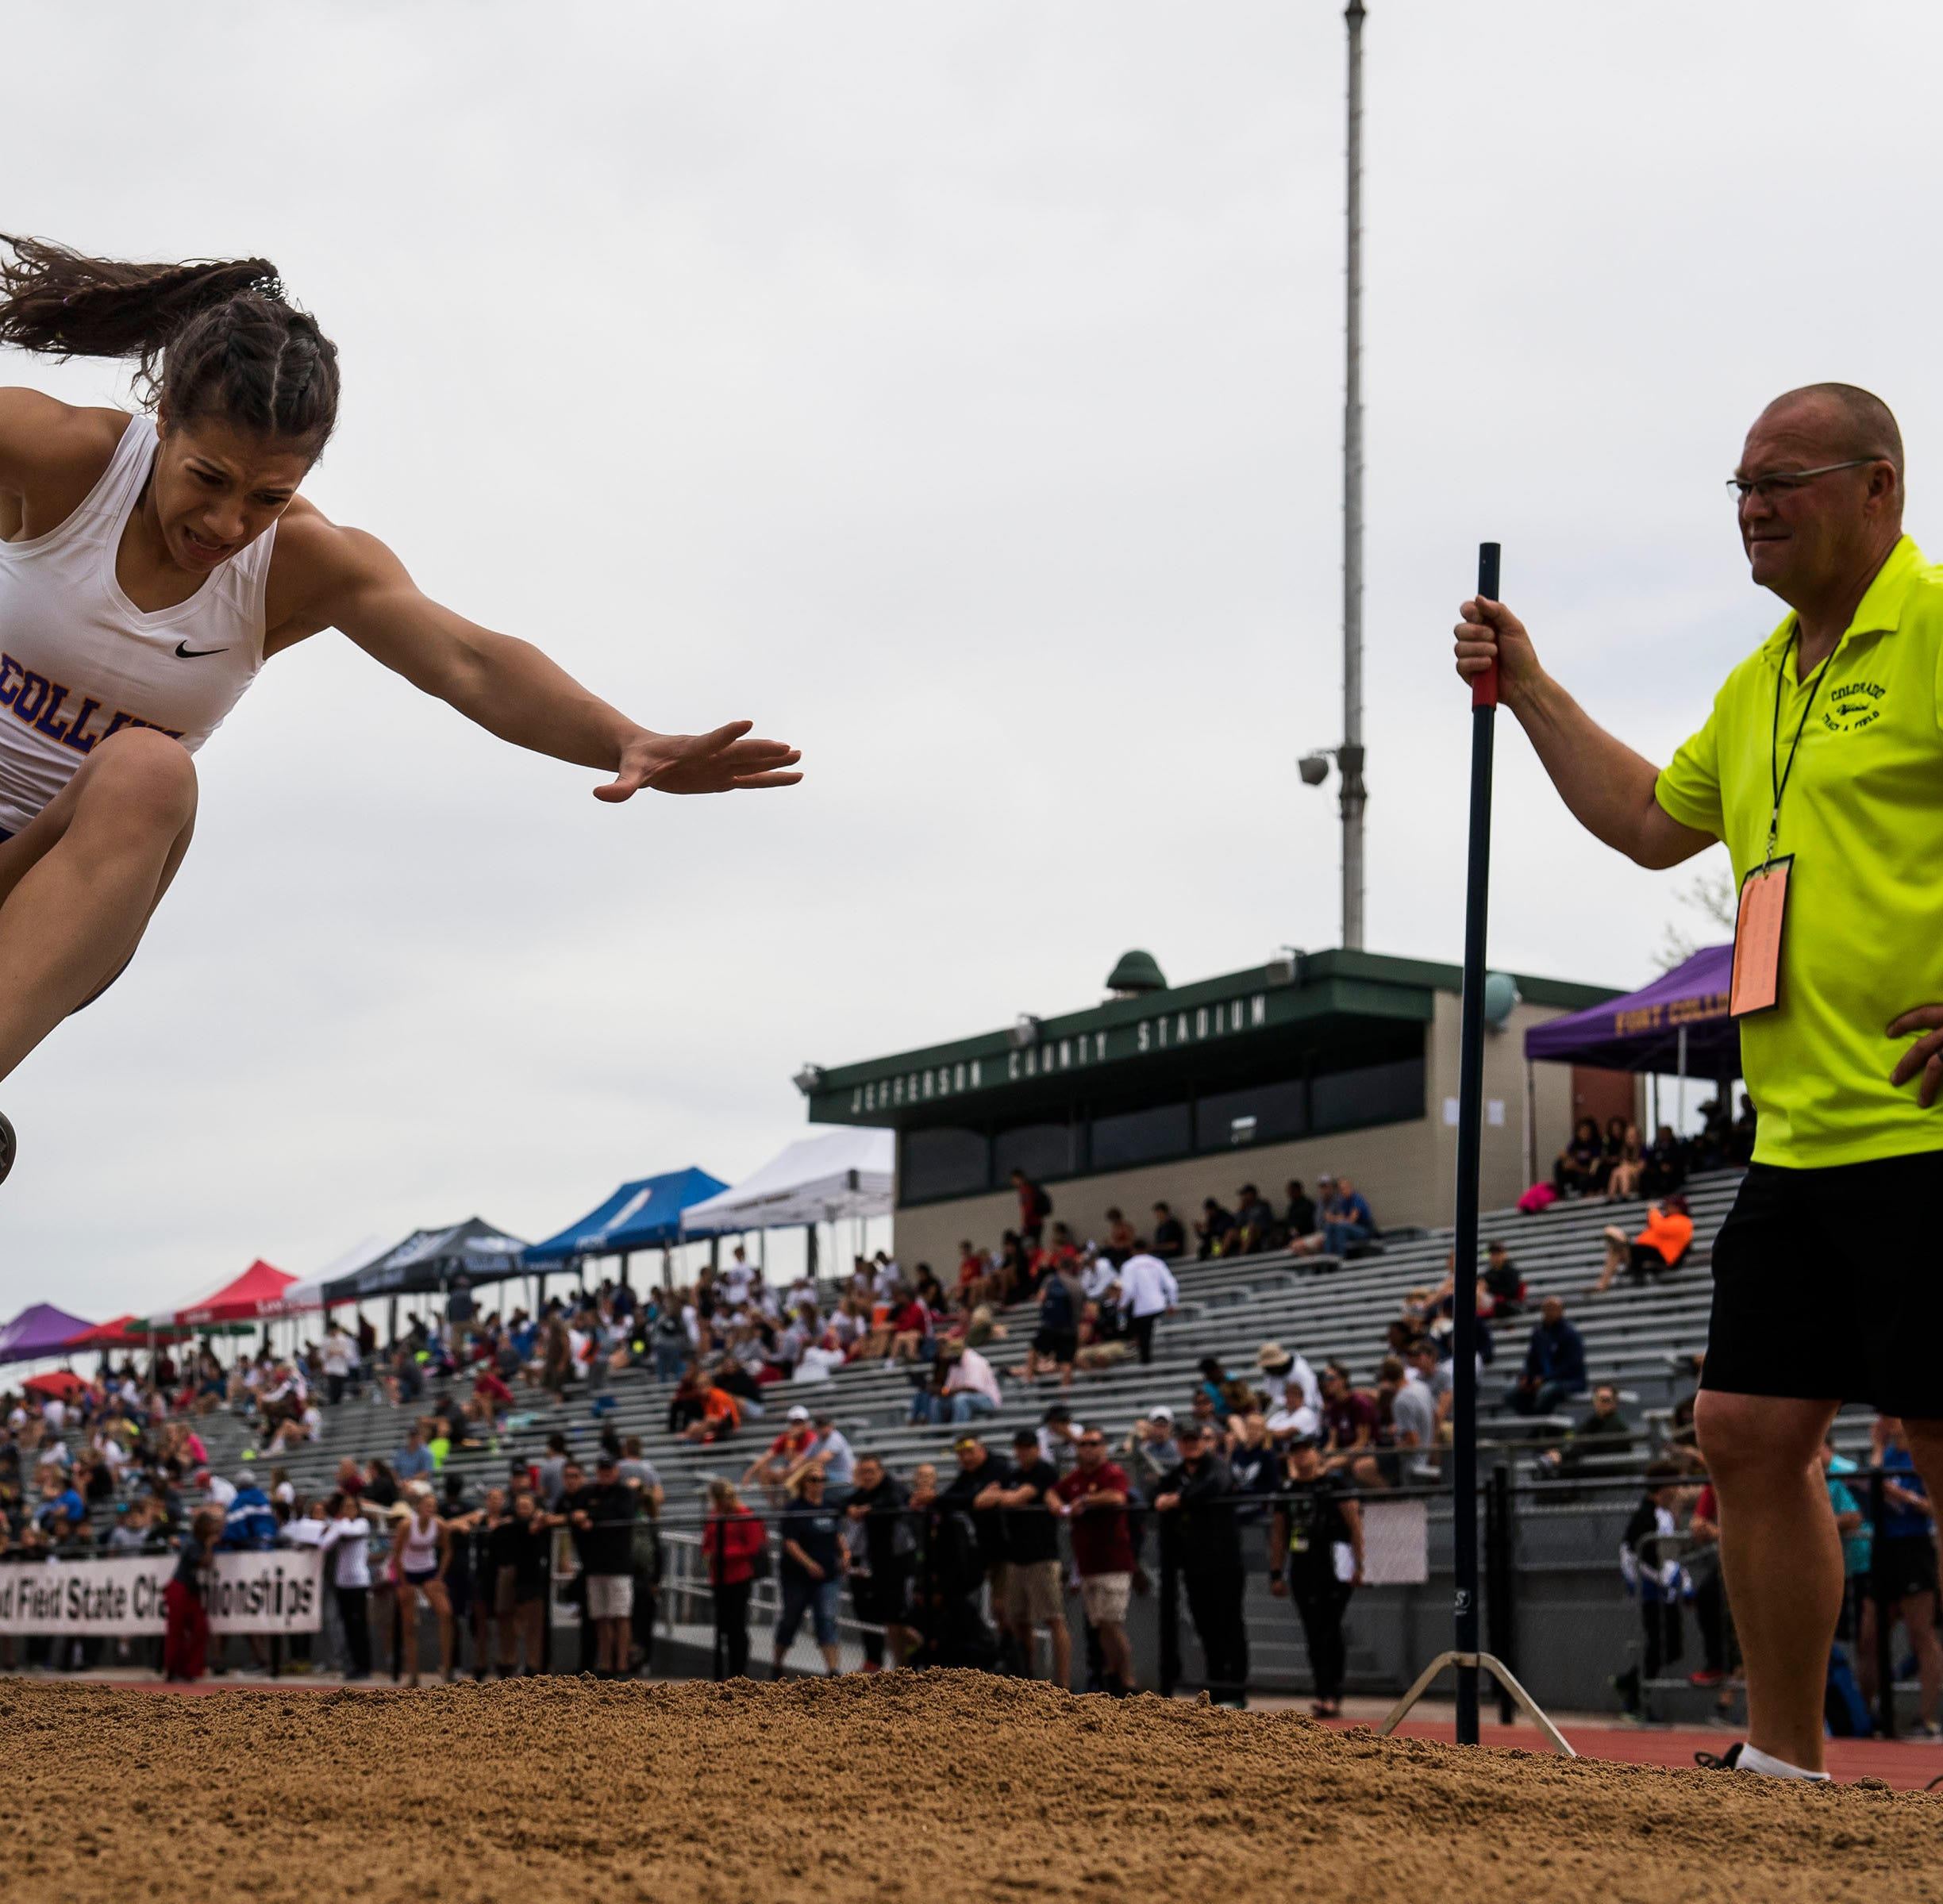 Live updates: First day of Colorado high school state track and field meet